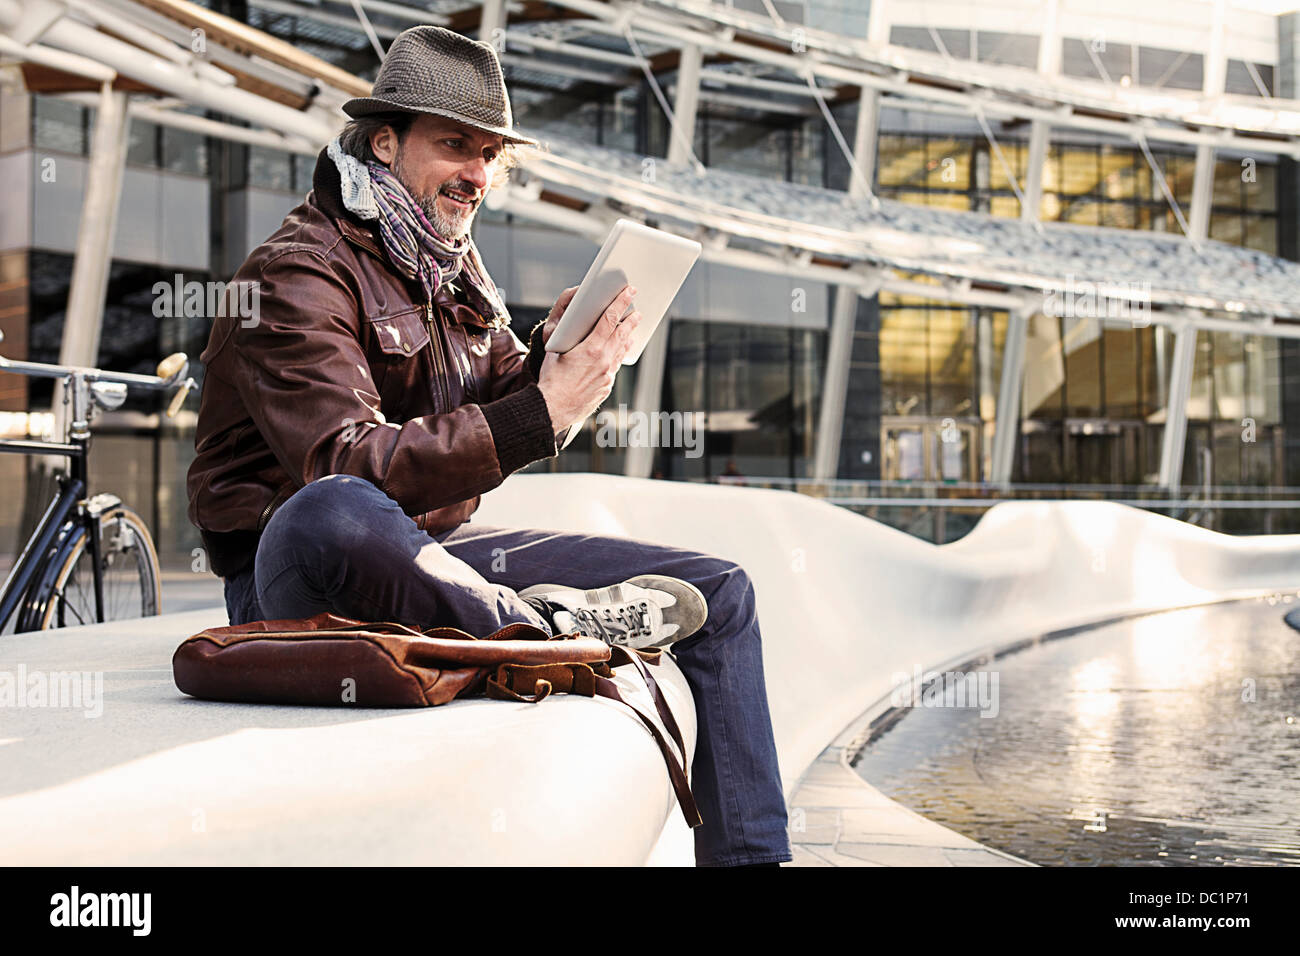 Mid adult man using digital tablet in city Photo Stock